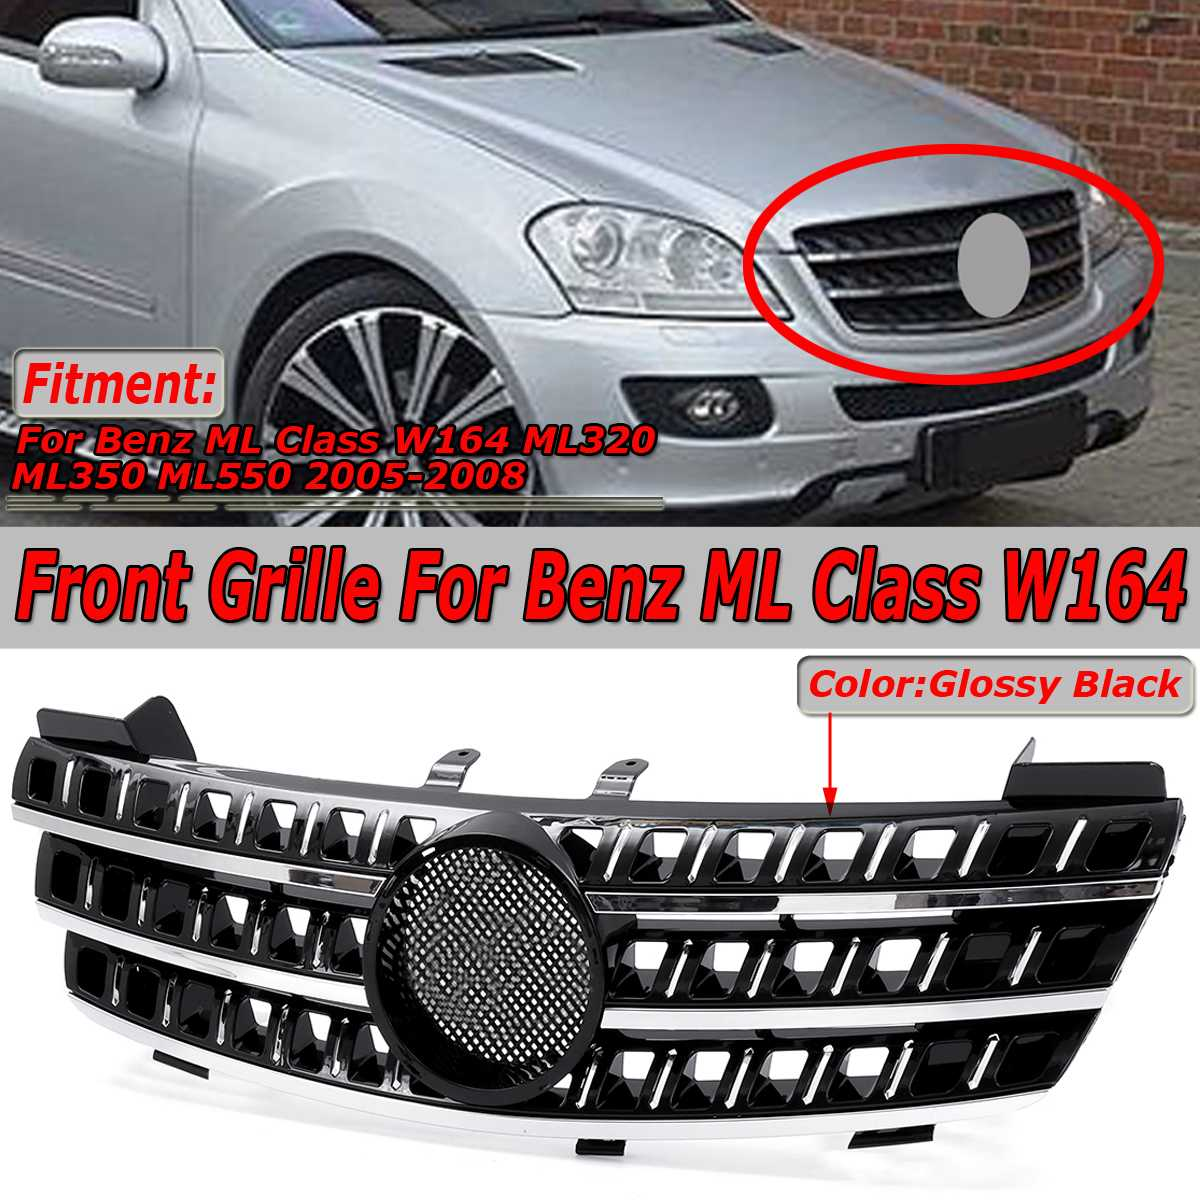 High Quality Car Front Bumper Mesh Upper Grille Grill For Mercedes For Benz ML Class W164 ML320 ML350 ML550 05 08 Racing Grille